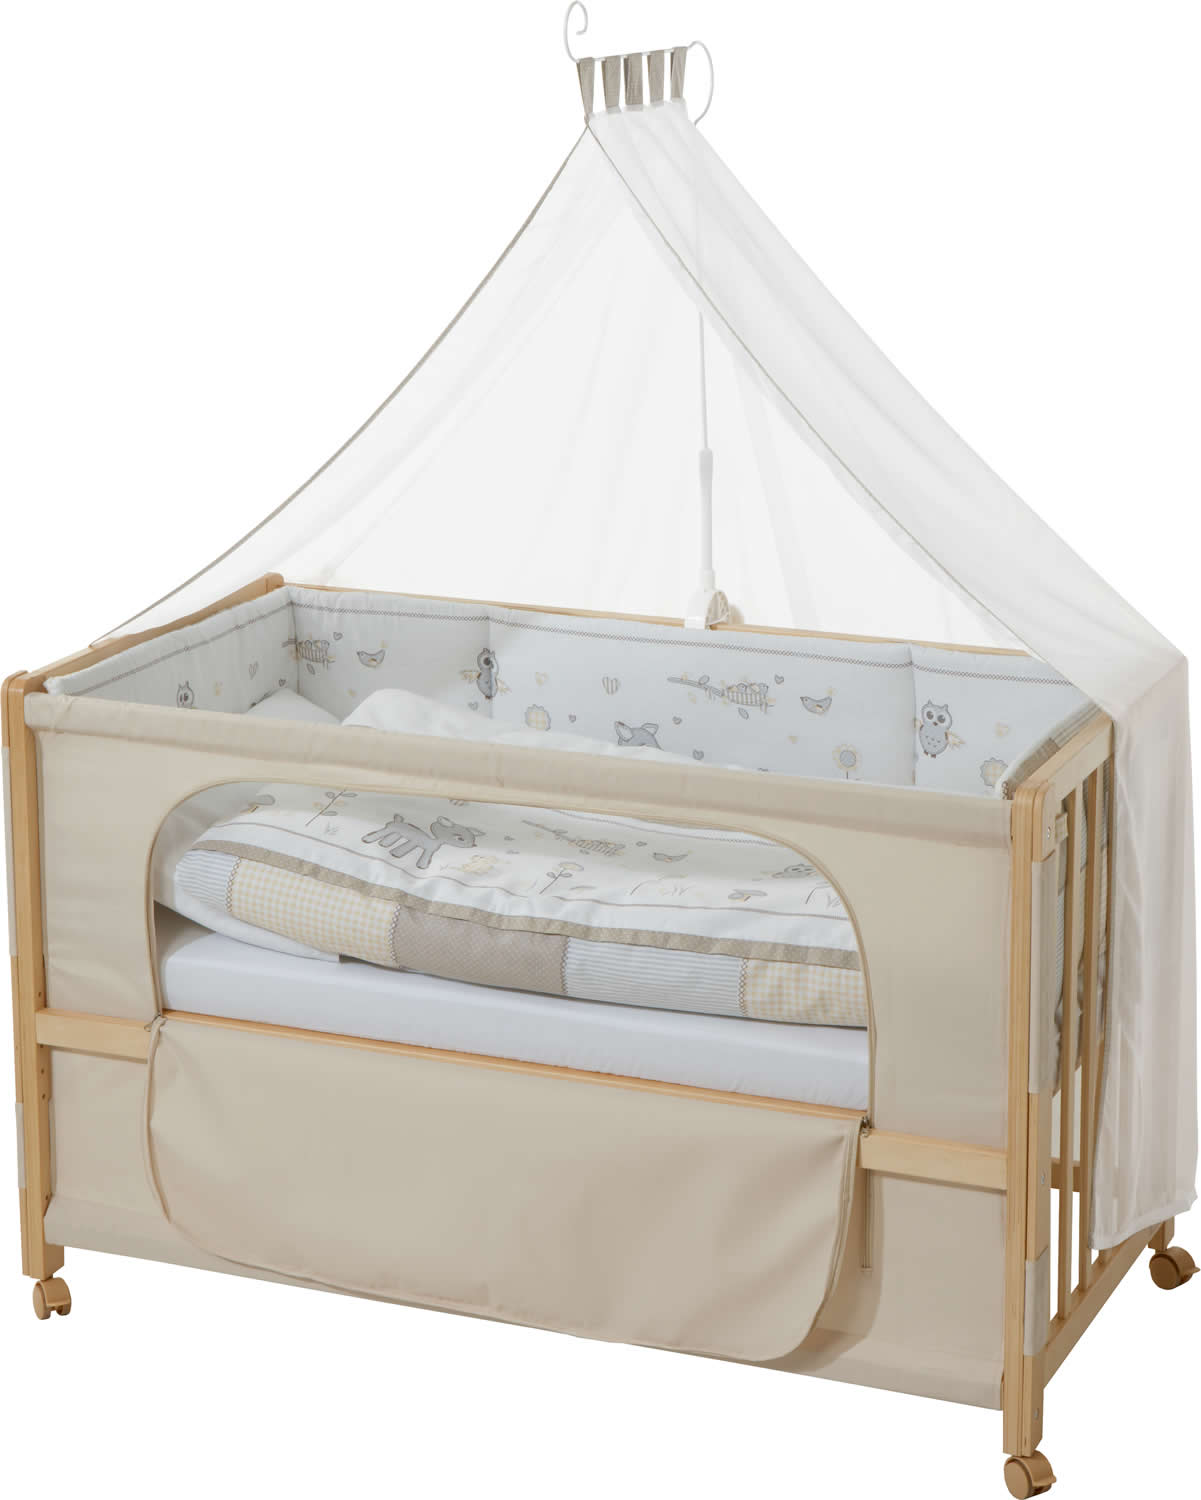 roba room bed babybett kinderbett beistellbett juniorbett ebay. Black Bedroom Furniture Sets. Home Design Ideas